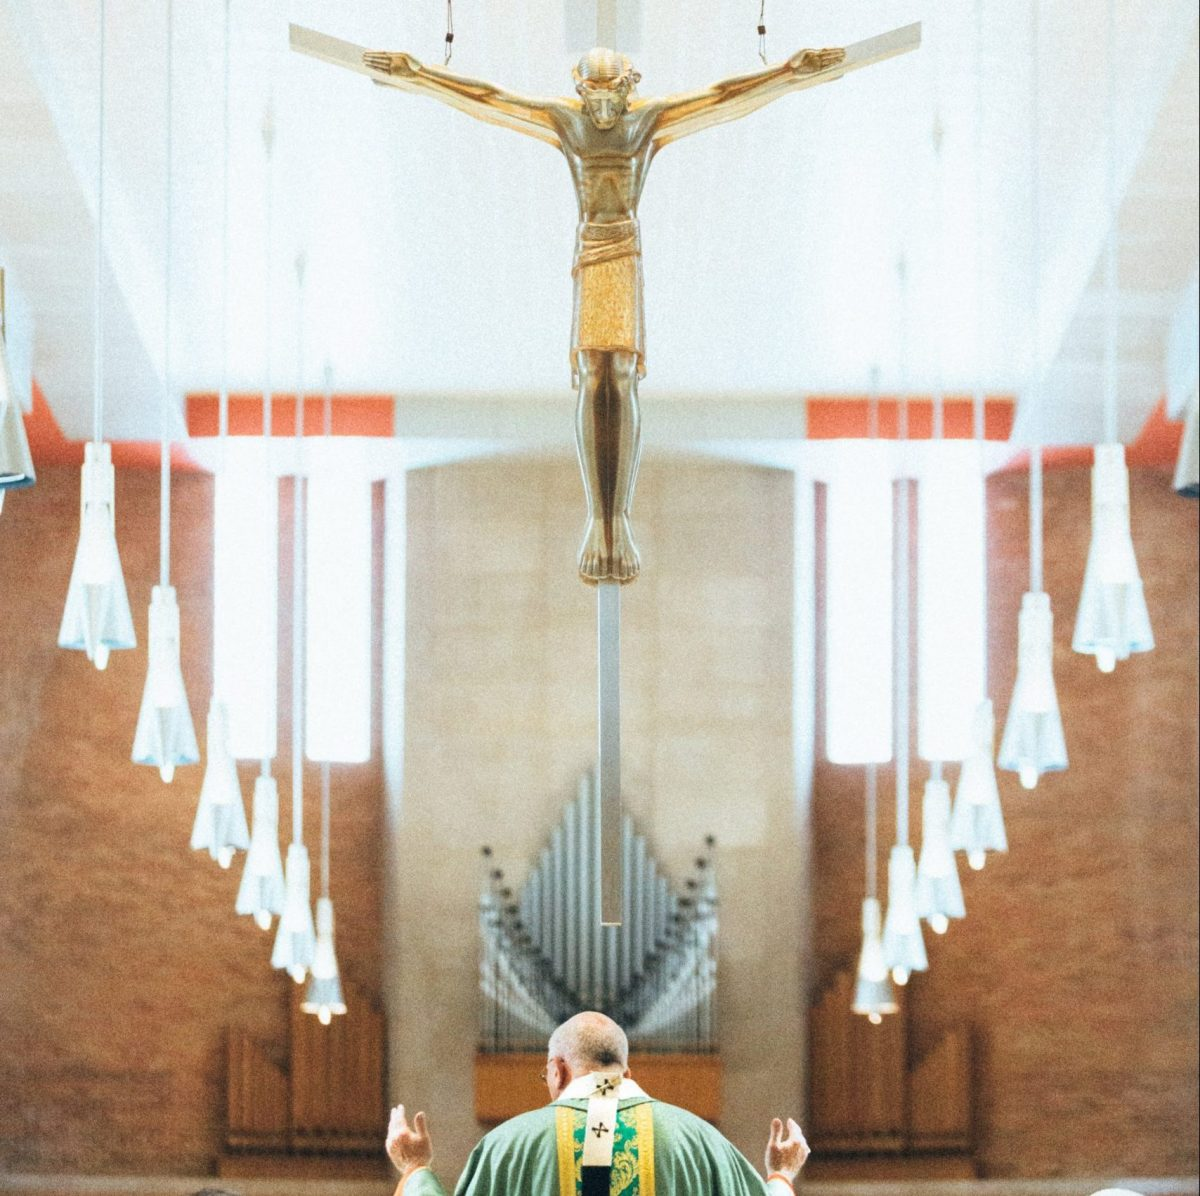 No Drums? No Guitars? Why The Organ Is The Catholic Church's Favorite